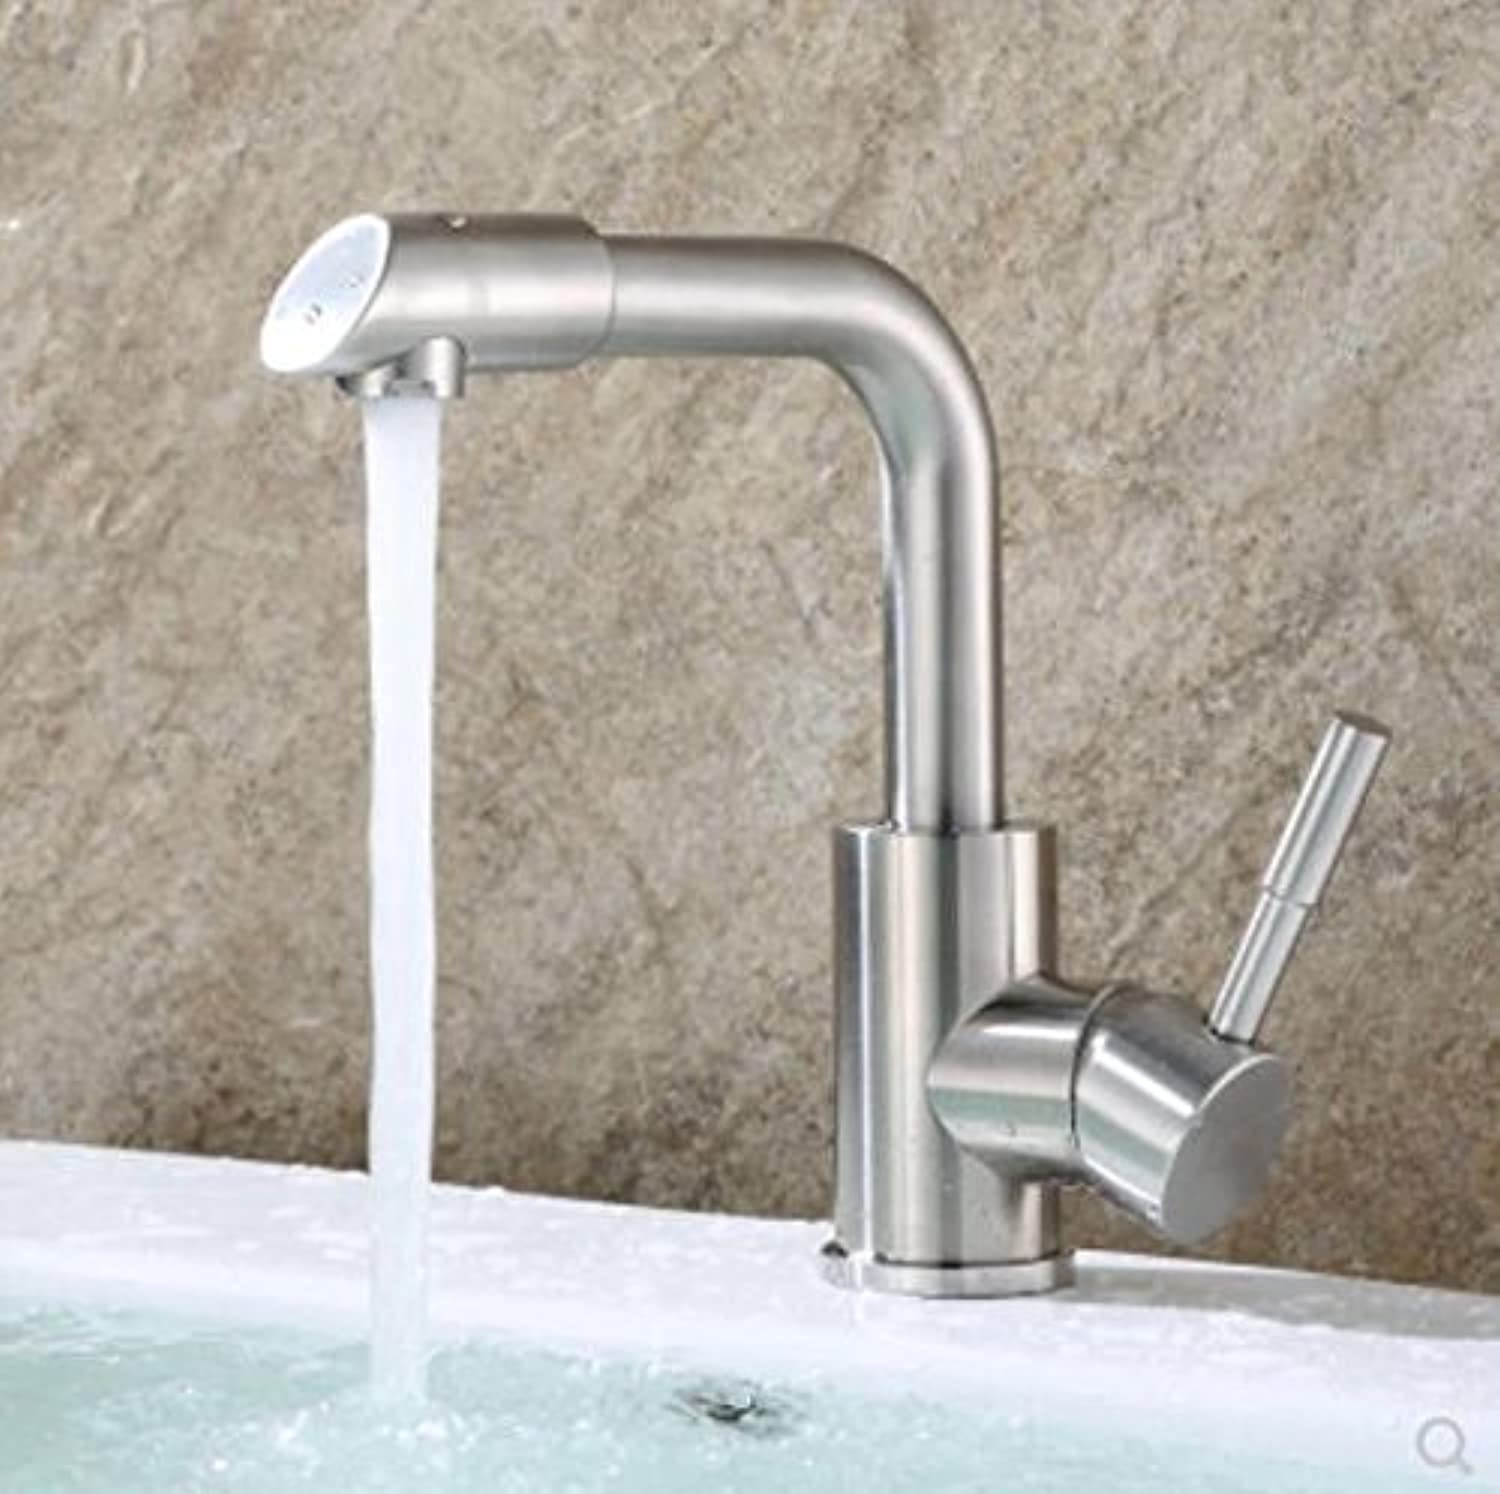 Decorry Washbasin Faucet Hot and Cold 304 Stainless Steel Faucet Toilet Single Hole Basin Basin Handbasin Basin Tap Ceramic Disc Spool 360 Degree redation